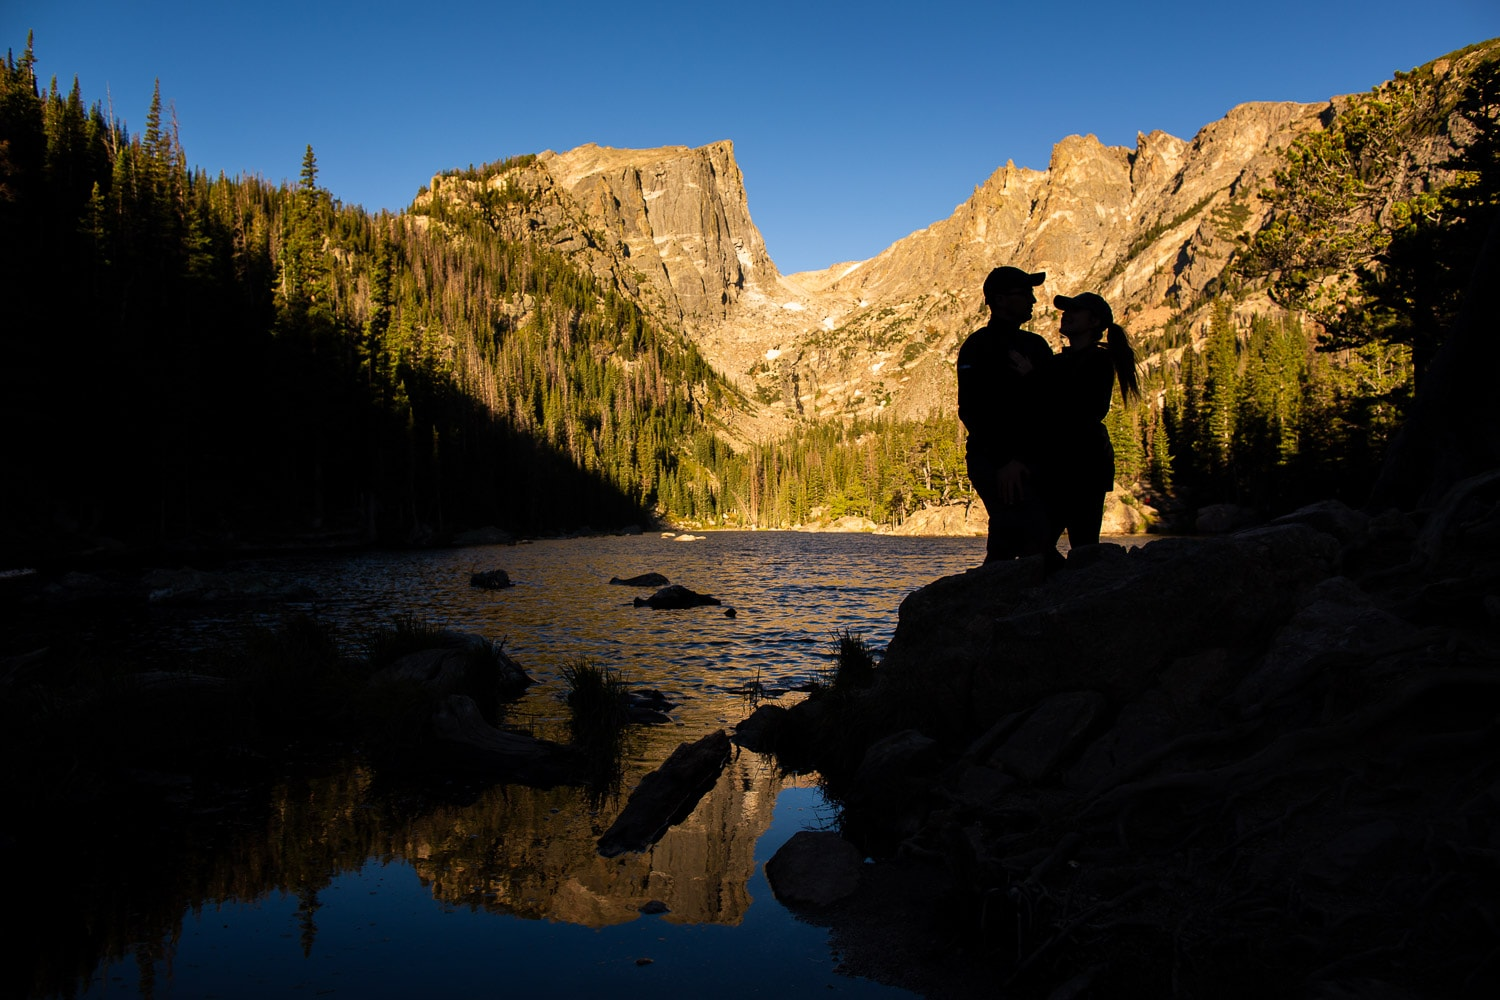 Sunrise Estes Park Proposal Photos – Dream Lake Proposal Photographer